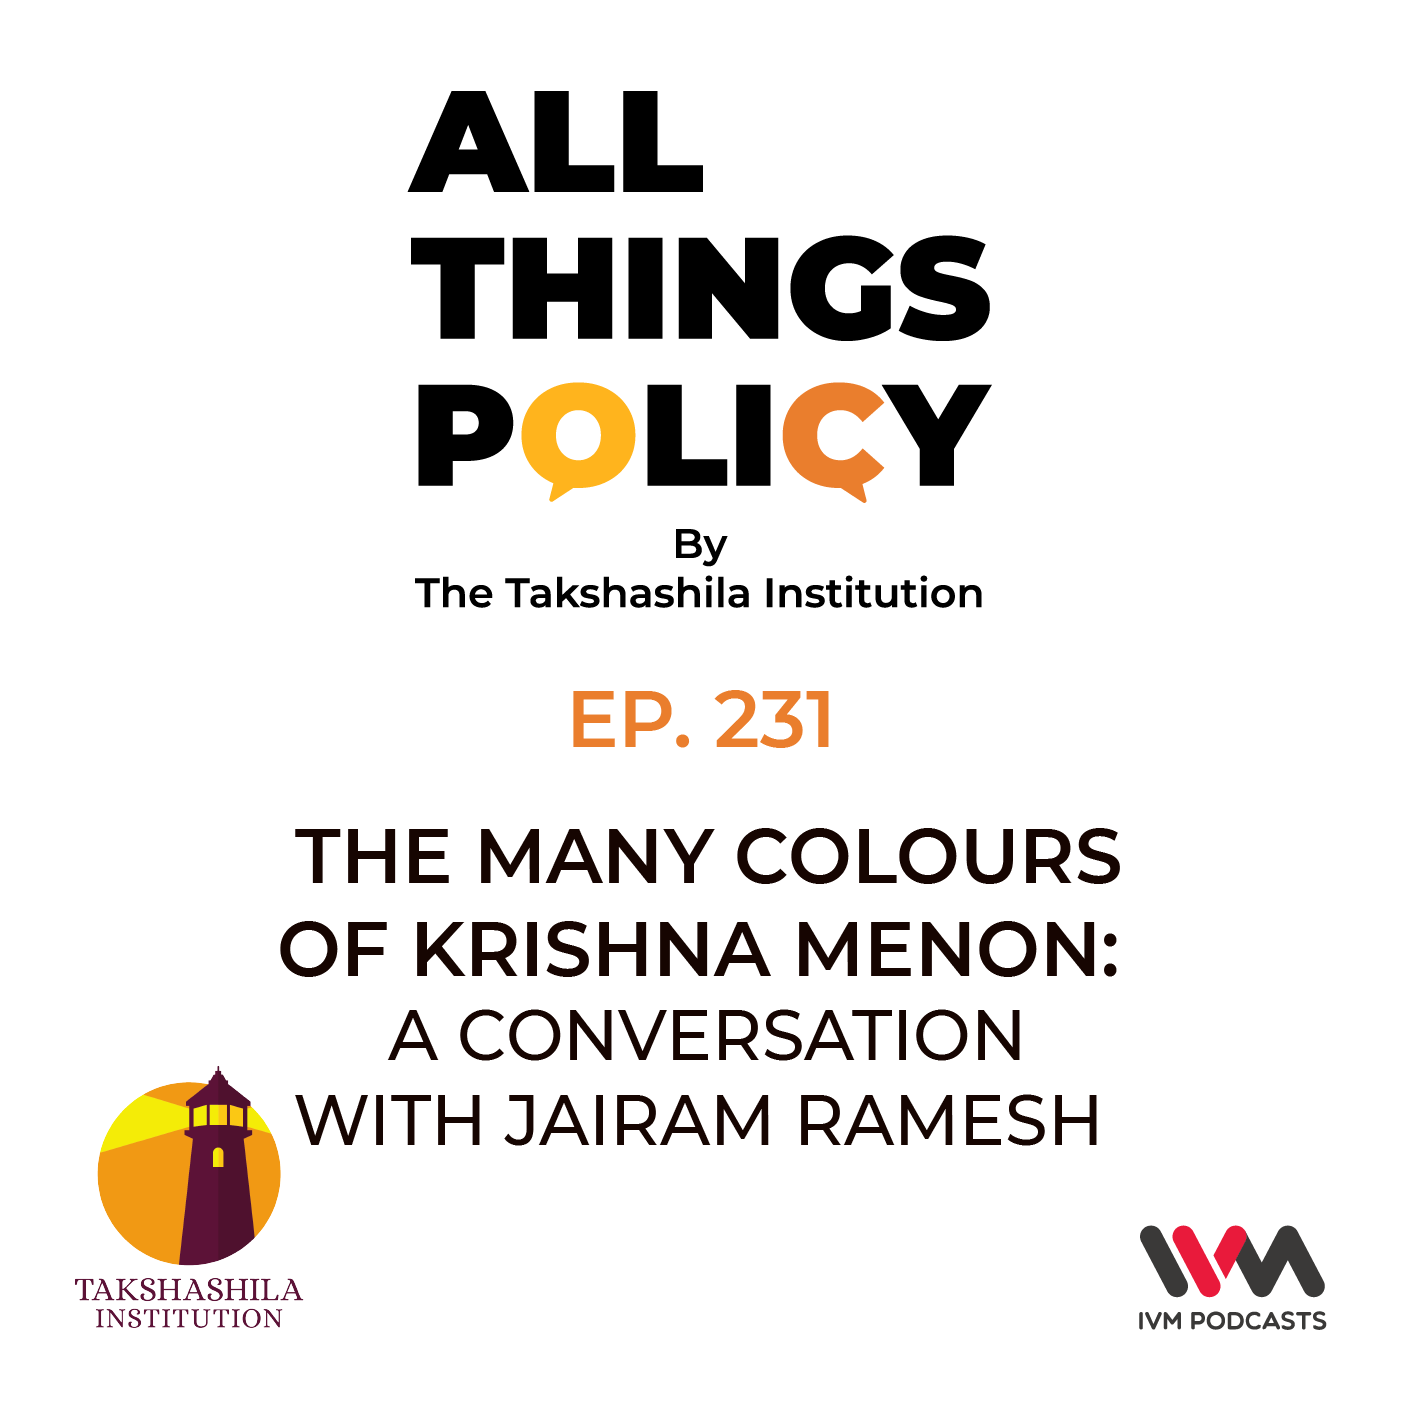 Ep. 231: The Many Colours of Krishna Menon - A Conversation with Jairam Ramesh